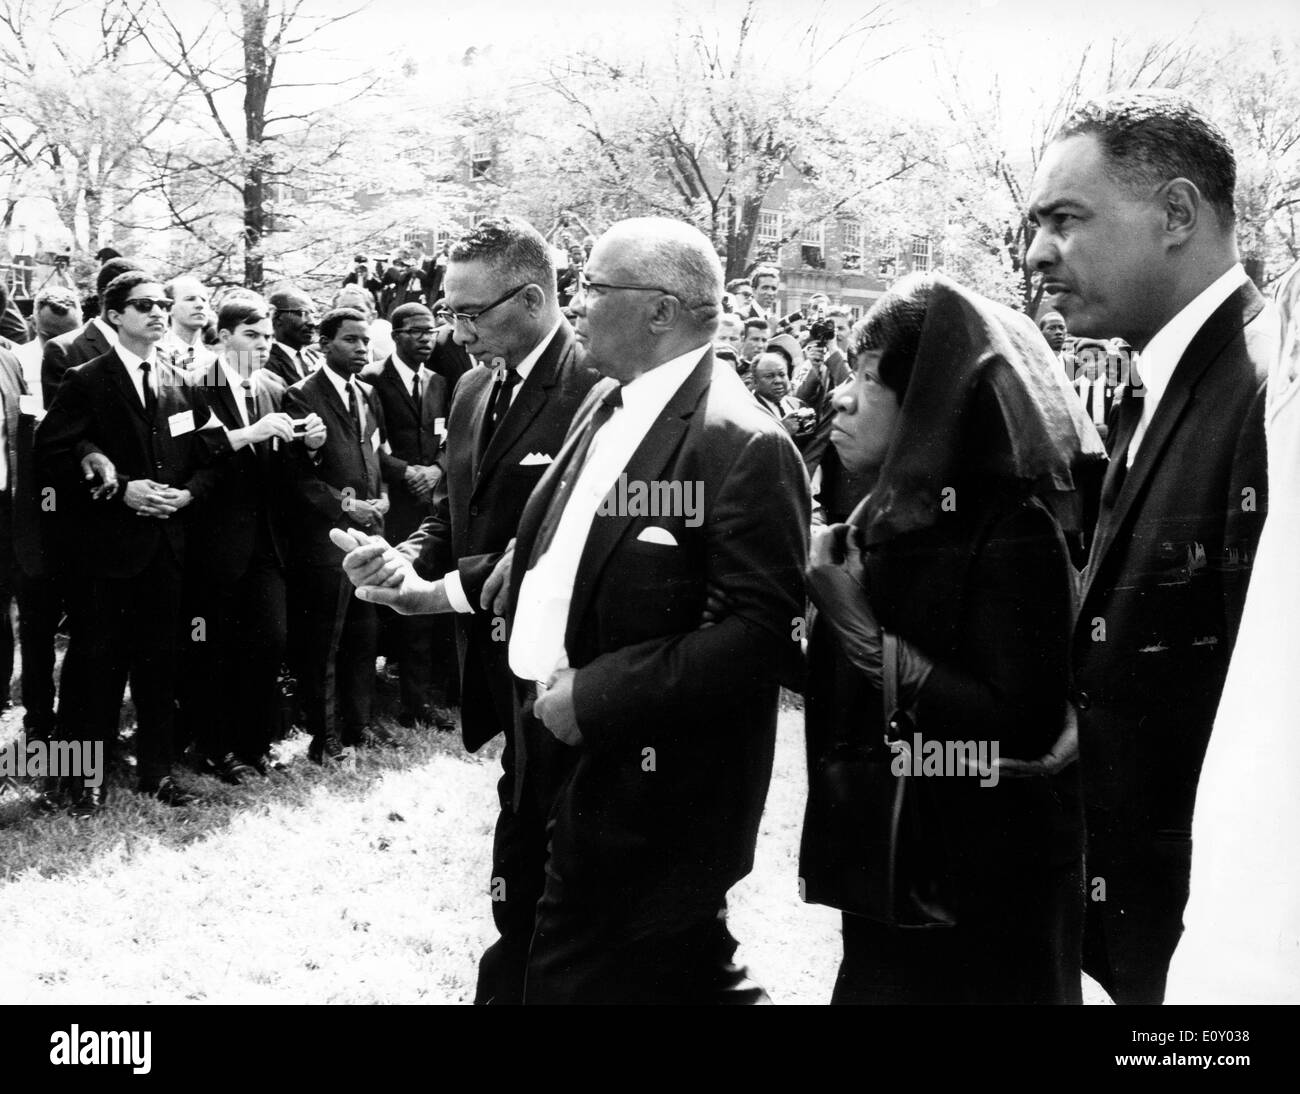 Persone in lutto frequentare Martin Luther King Jr. funerale Foto Stock